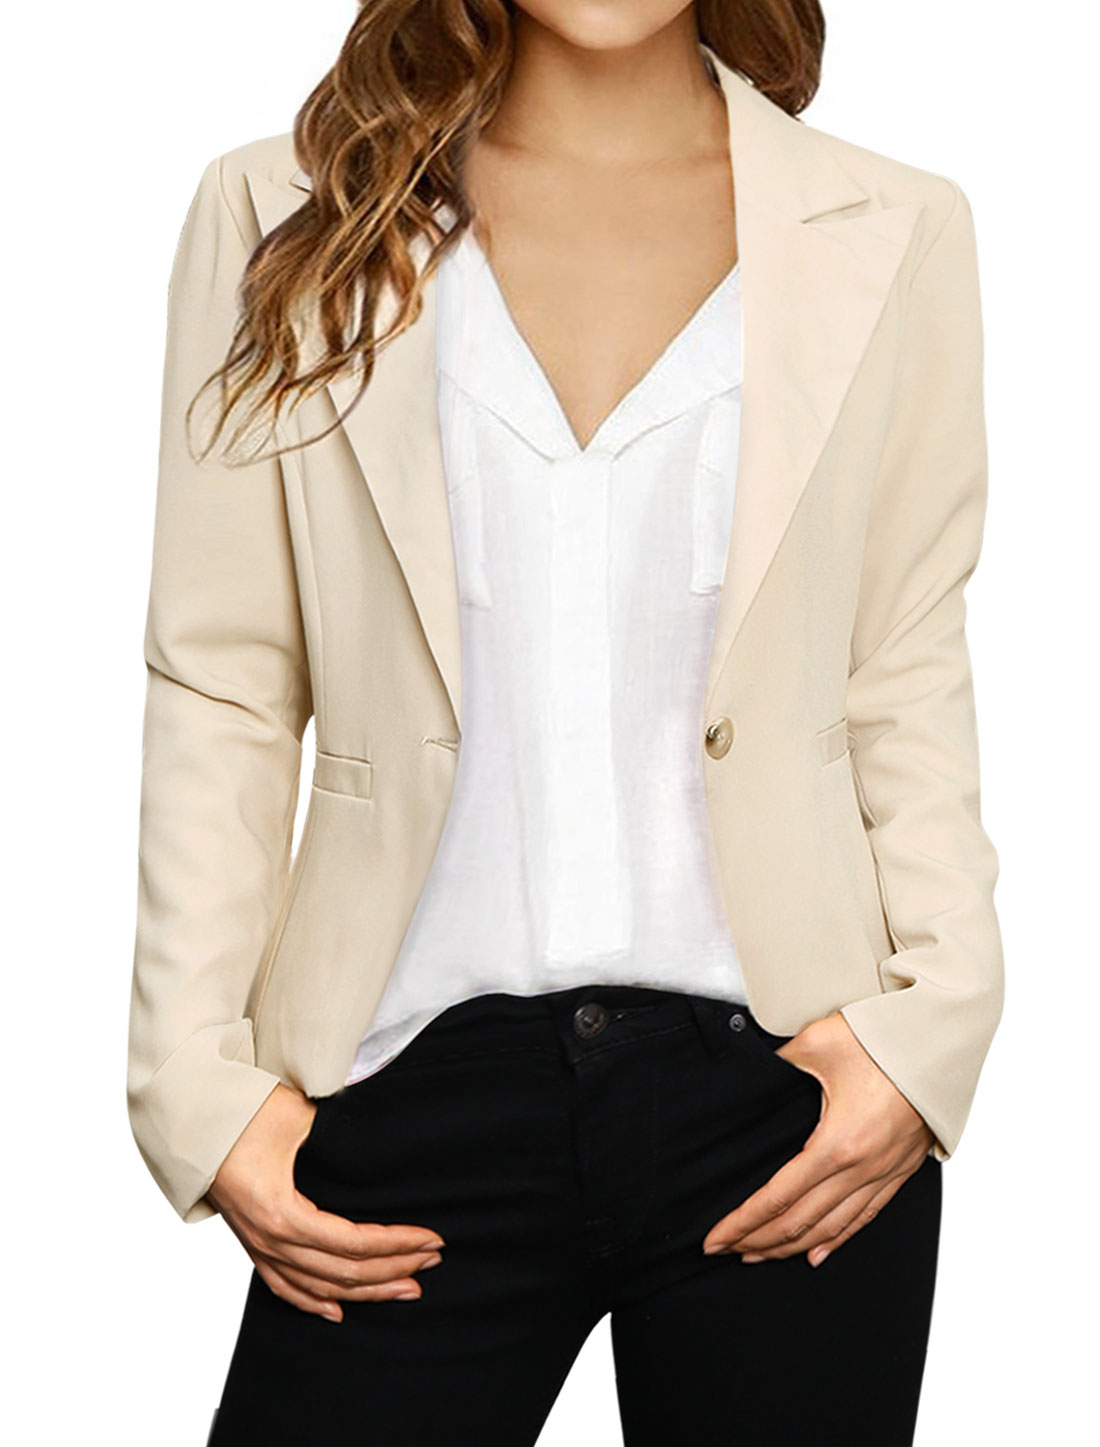 Women Peaked Lapel Long Sleeves Elbow-Patch Blazer Beige M